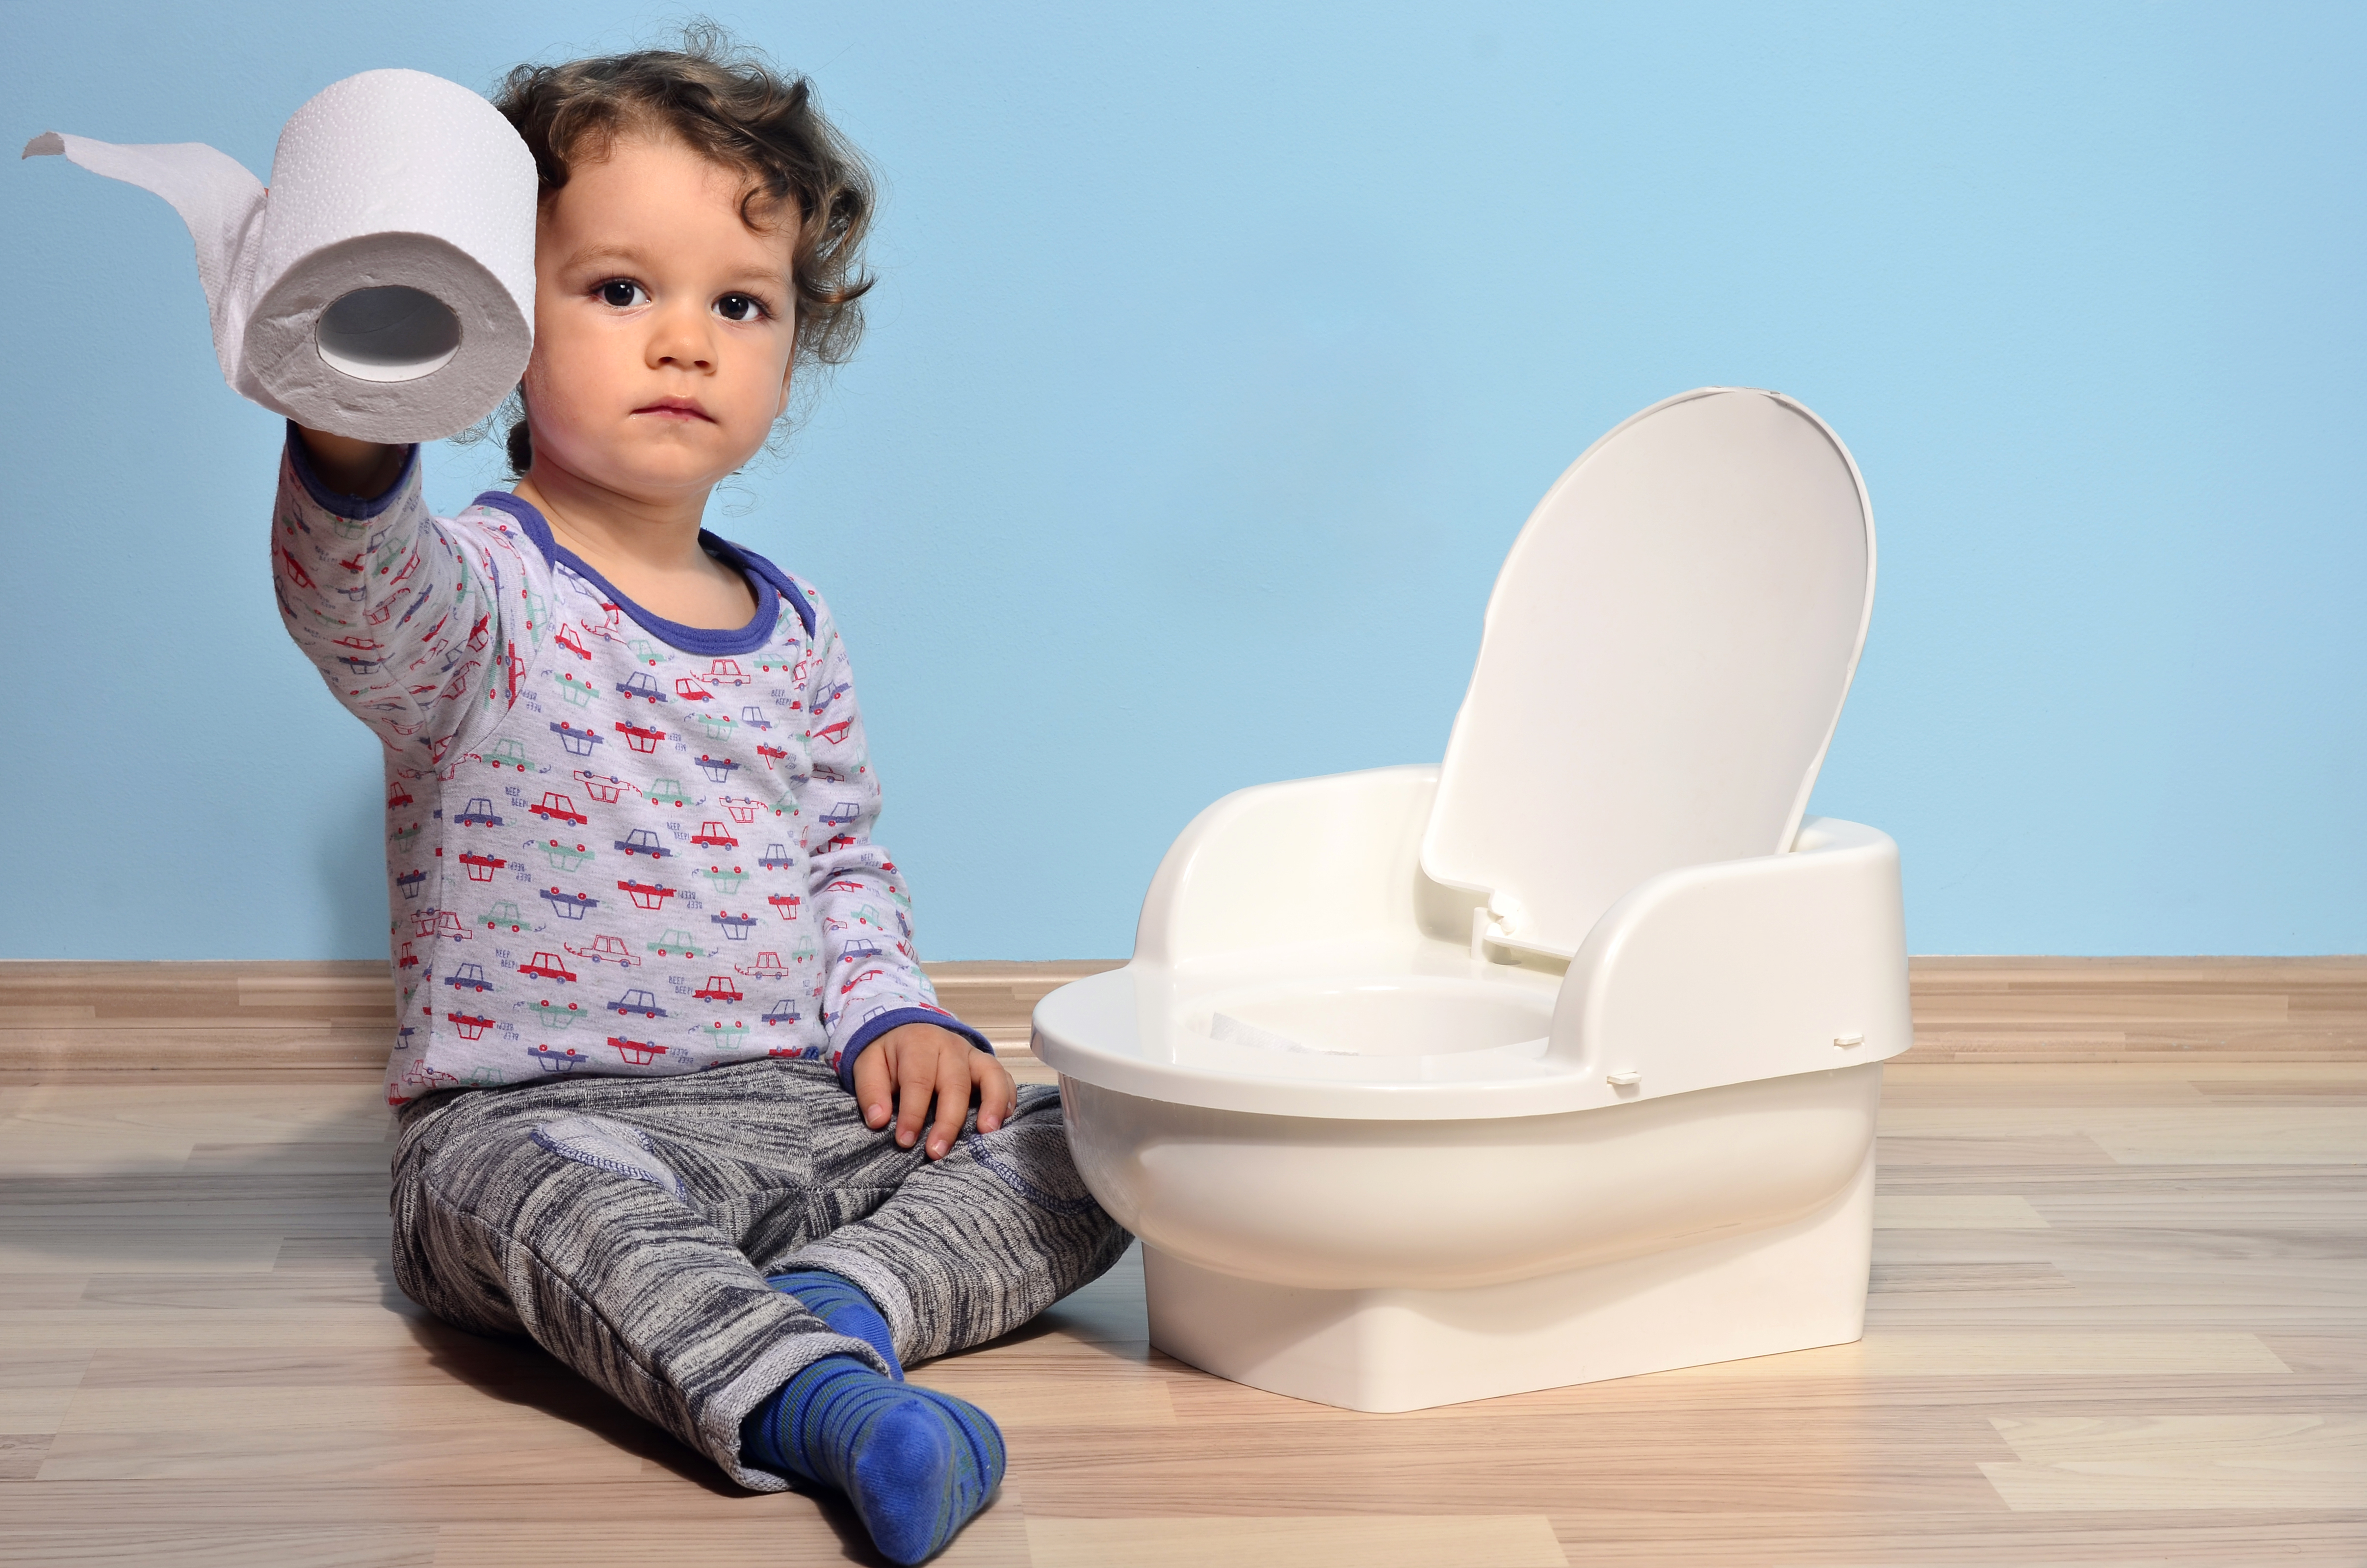 Pictured is a child holding toilet paper next to a mini toilet. SHUTTERSTOCK/ Iulian Valentin